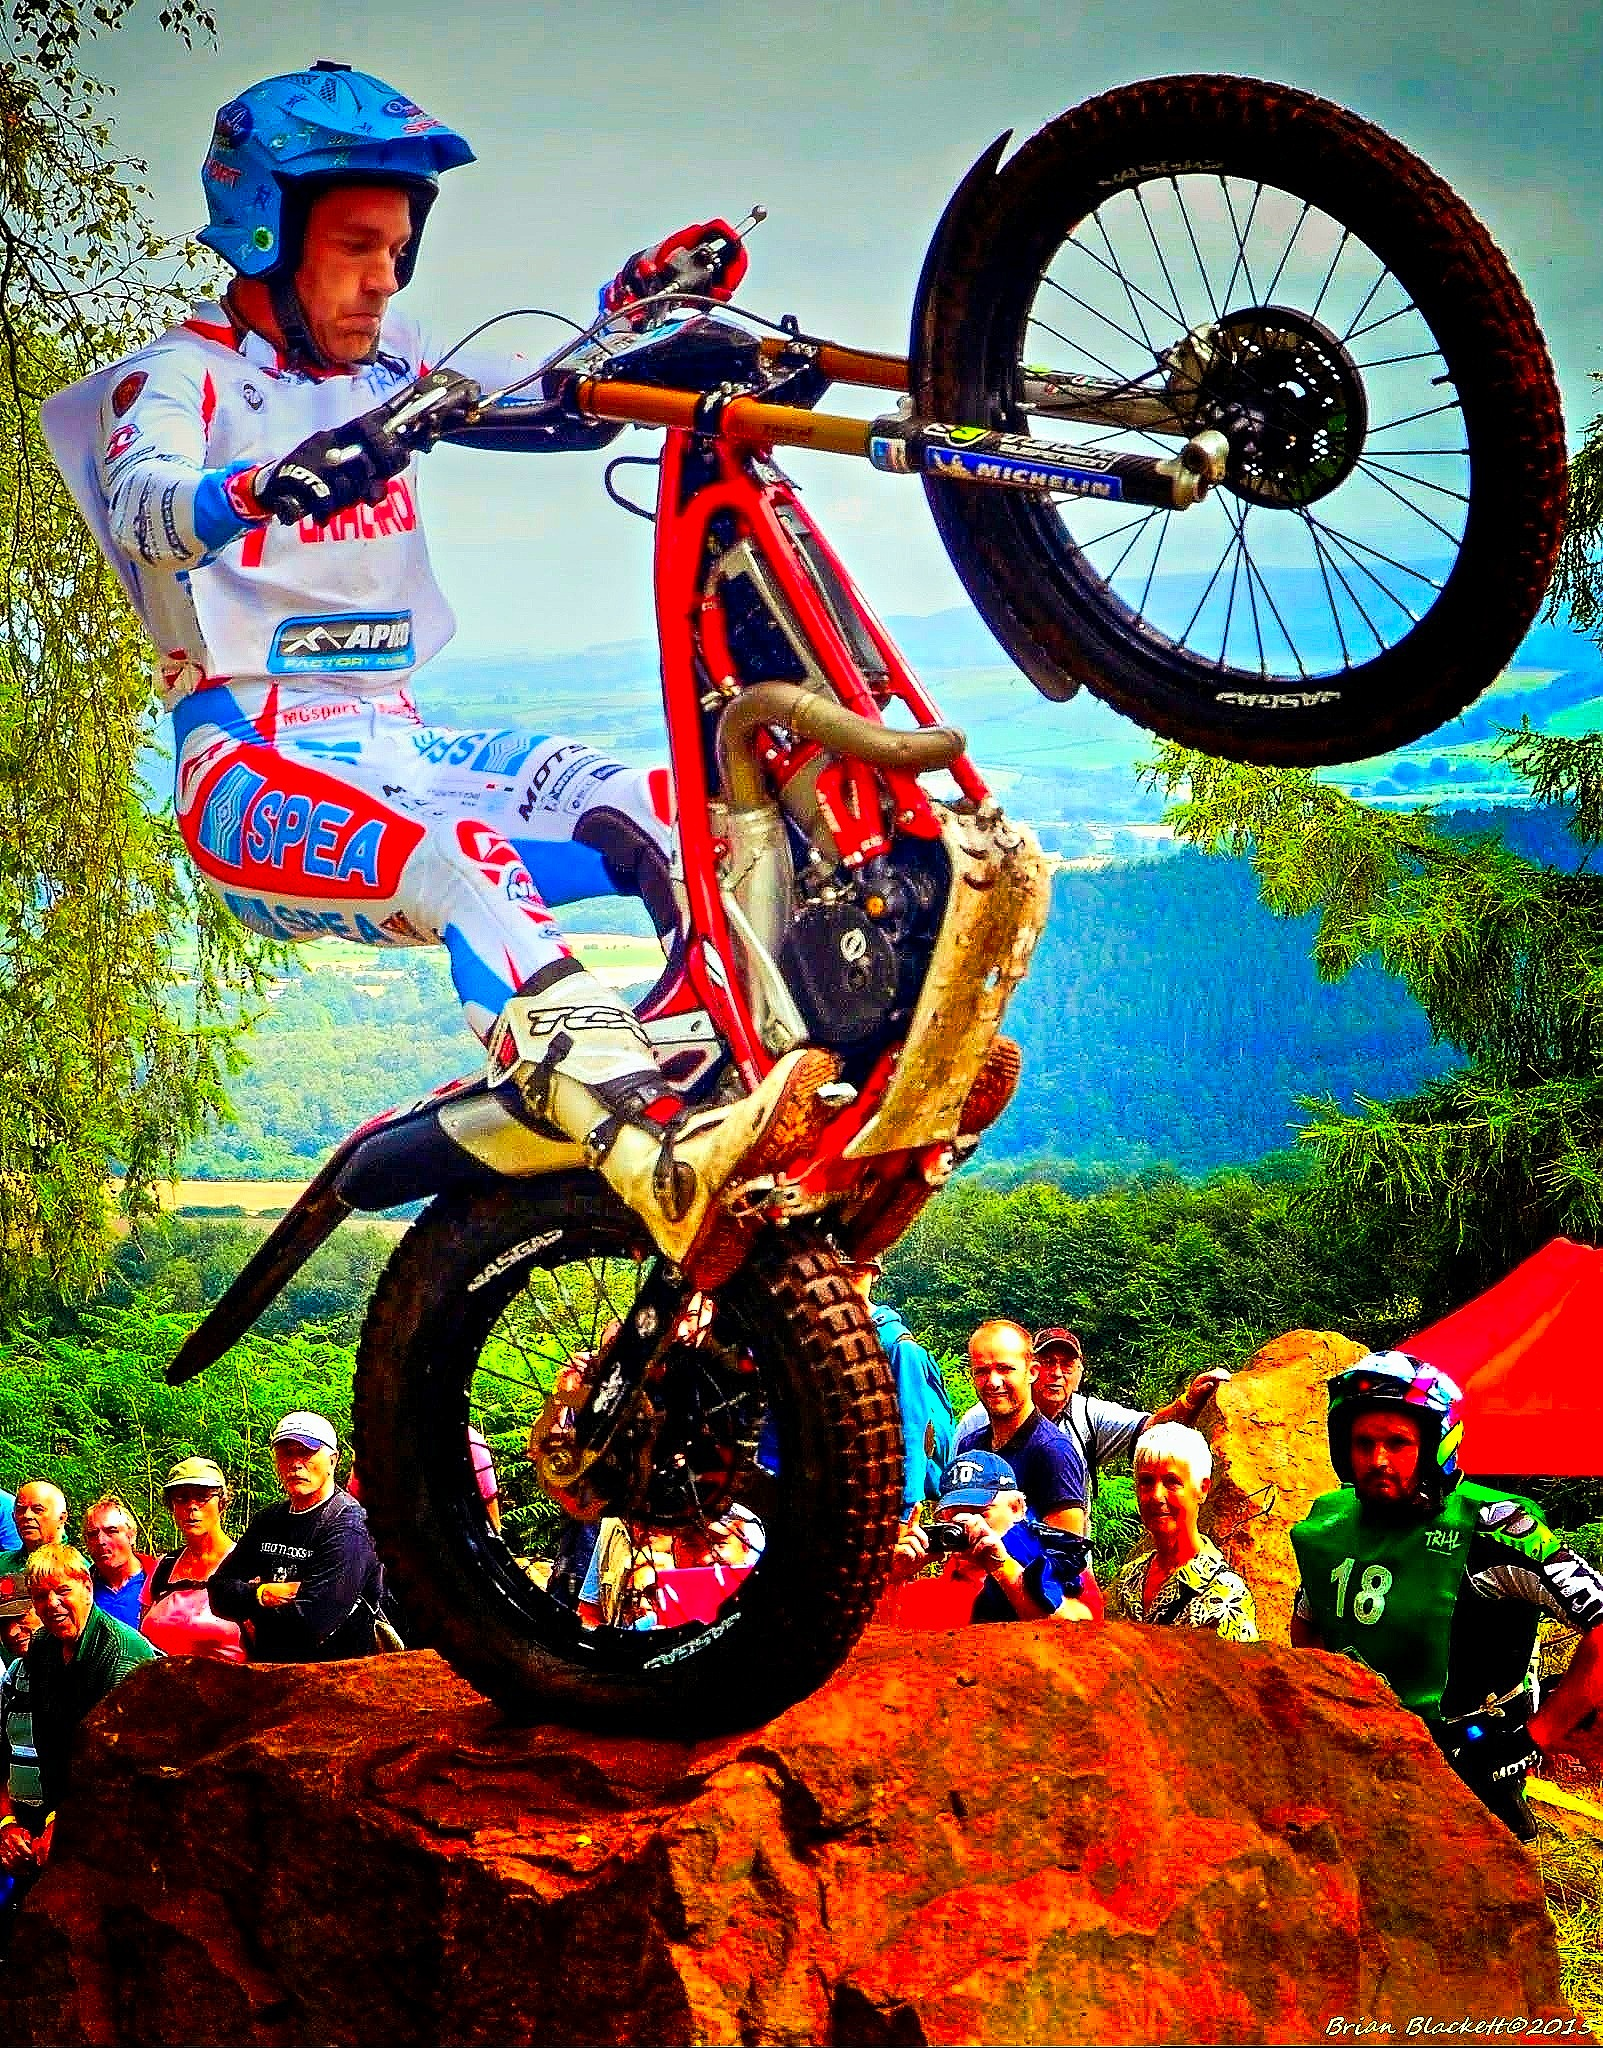 World Motorcycle Trials Action by brianblackett